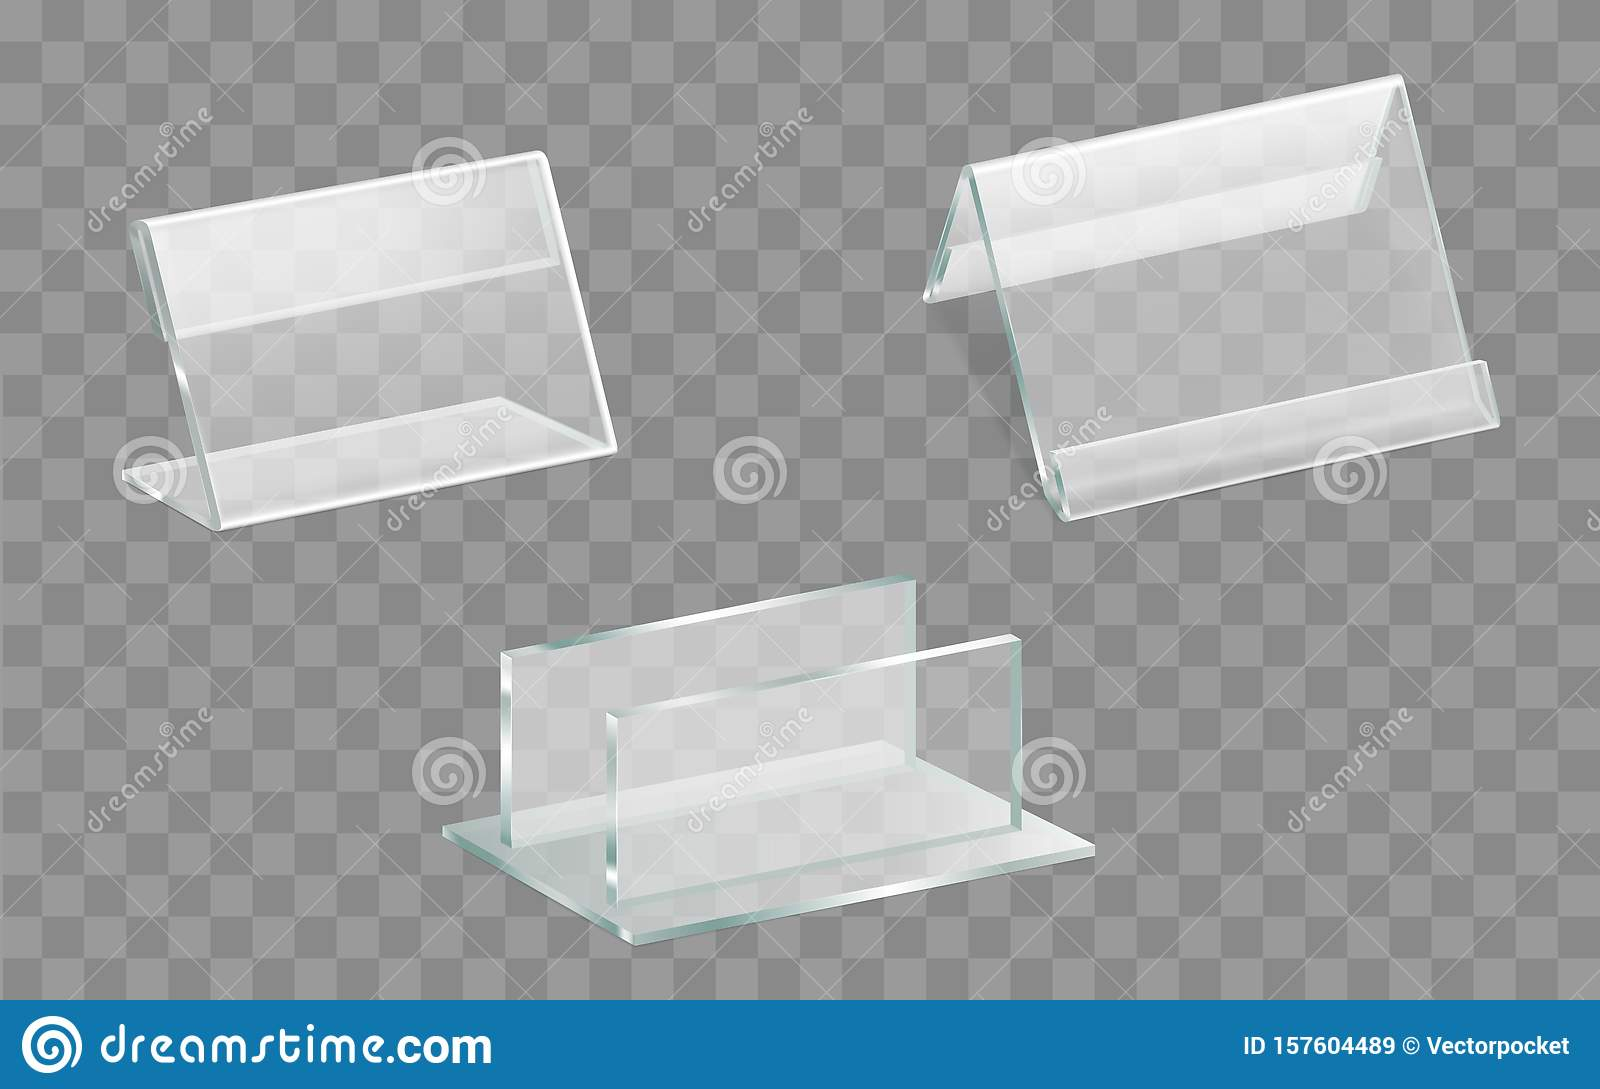 https www dreamstime com single double sided acrylic glass table displays talkers menu ad leaflets brochures plexiglass holders side top image157604489